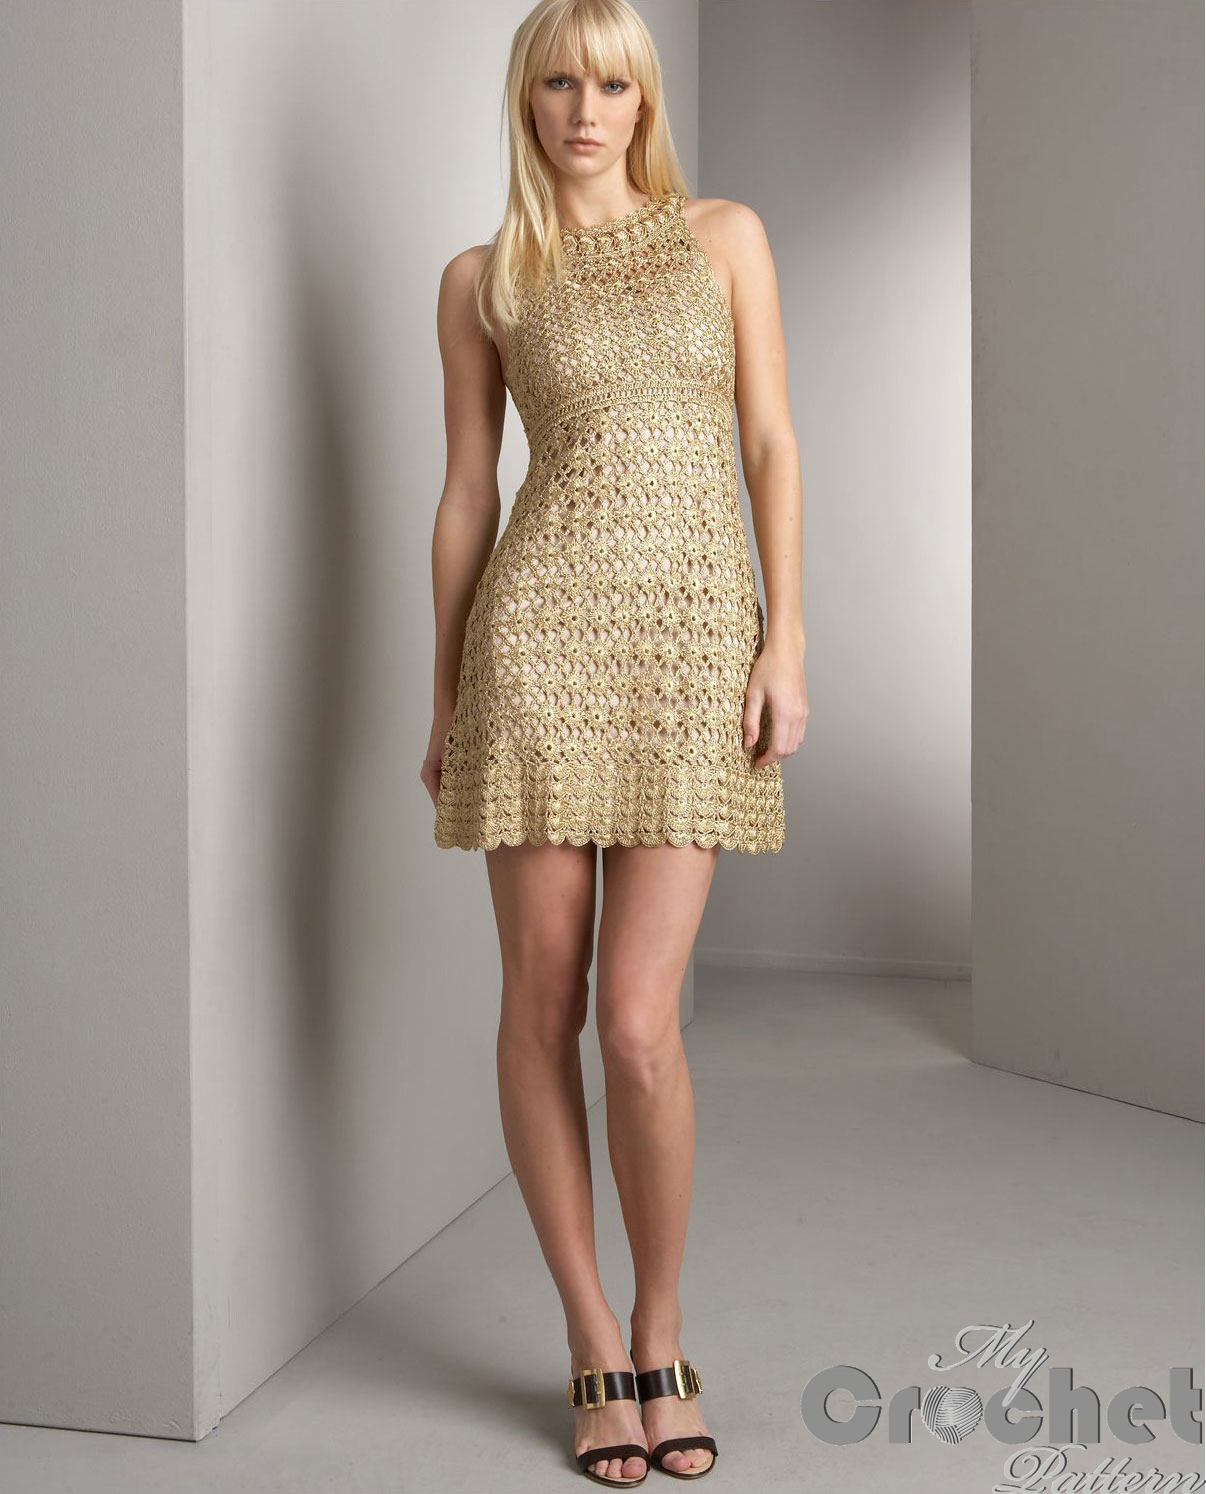 Golden crochet mini dress photo